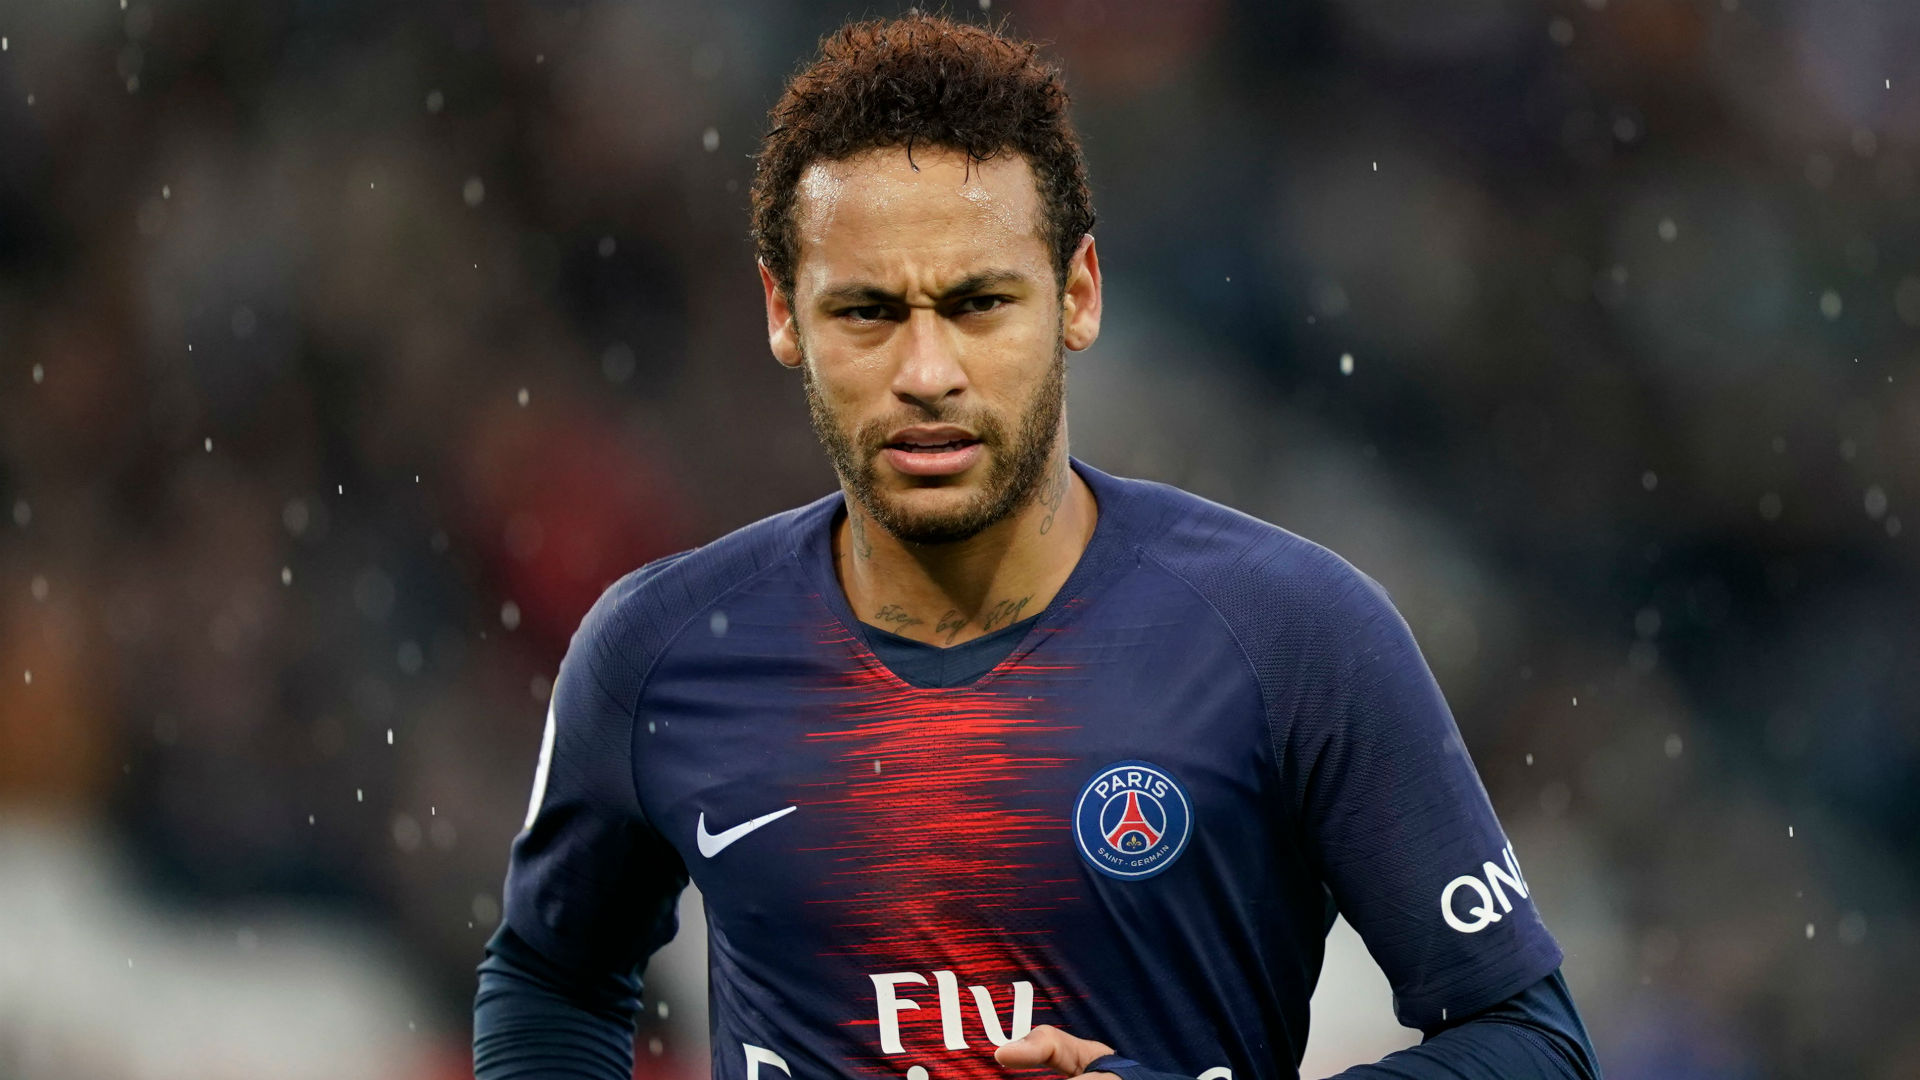 Neymar should play where he is happiest – Tite